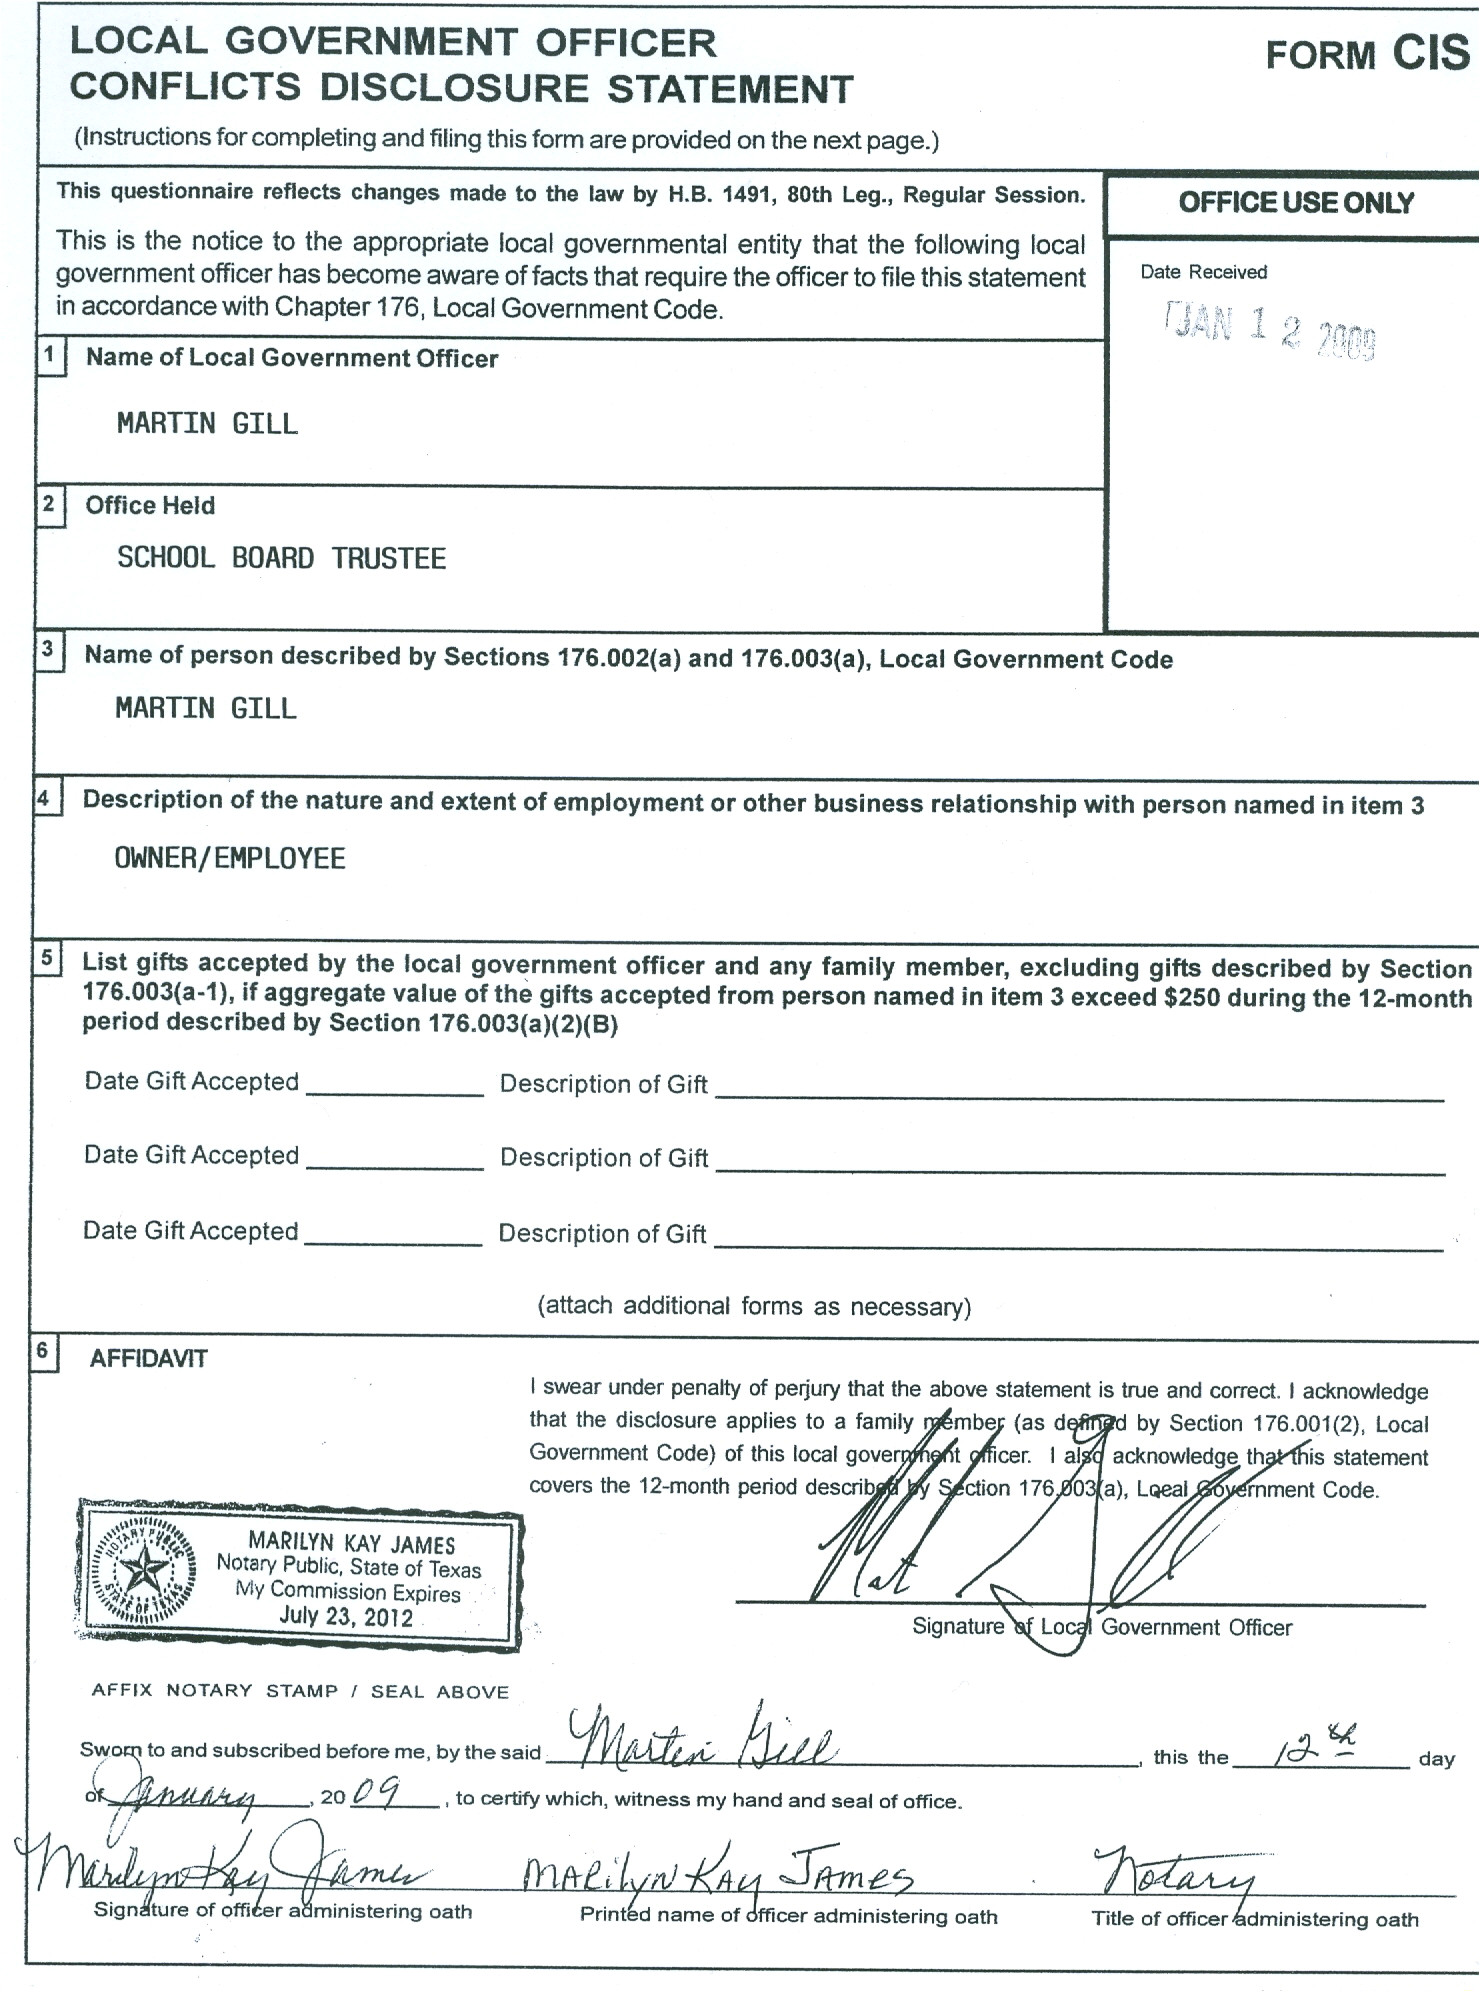 waiver of conflict of interest attorney form